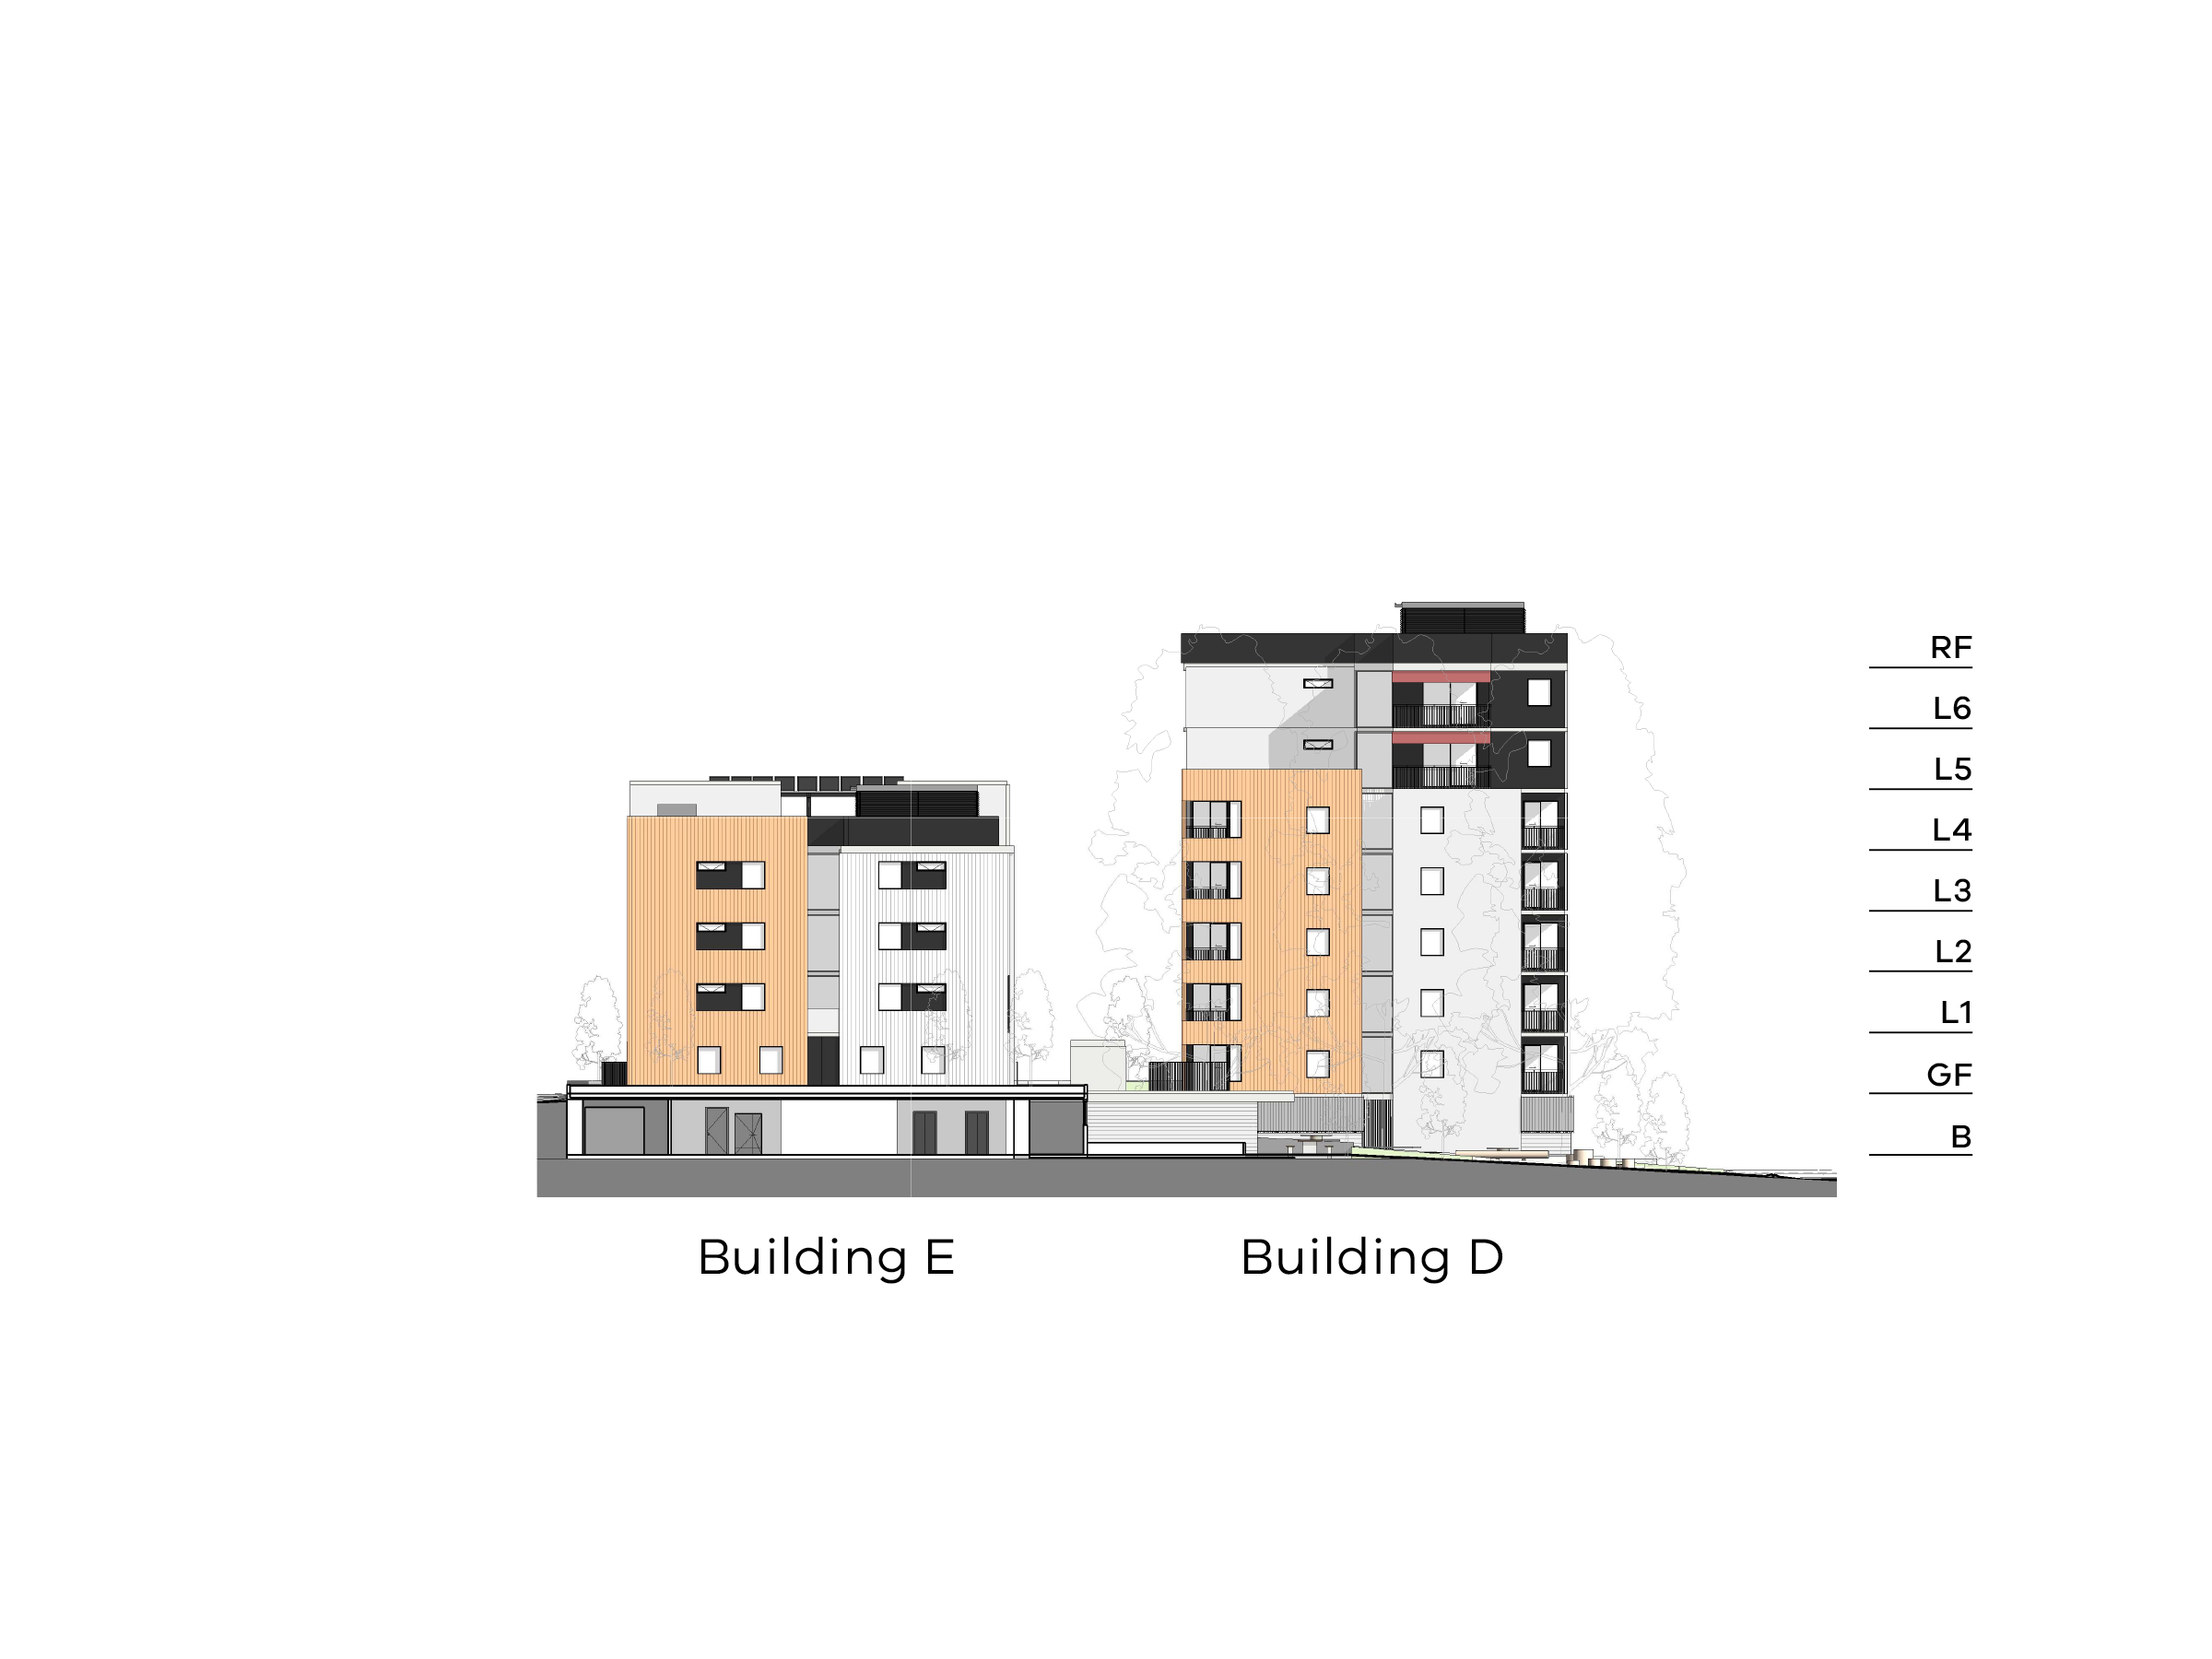 Diagram showing the heights of buildings D and E as seen from Hopetoun Child Care Centre. Building D has a basement, ground floor, level 1-6 and a flat roof. Building E has a basement, ground floor, level 1-5 and a flat roof.